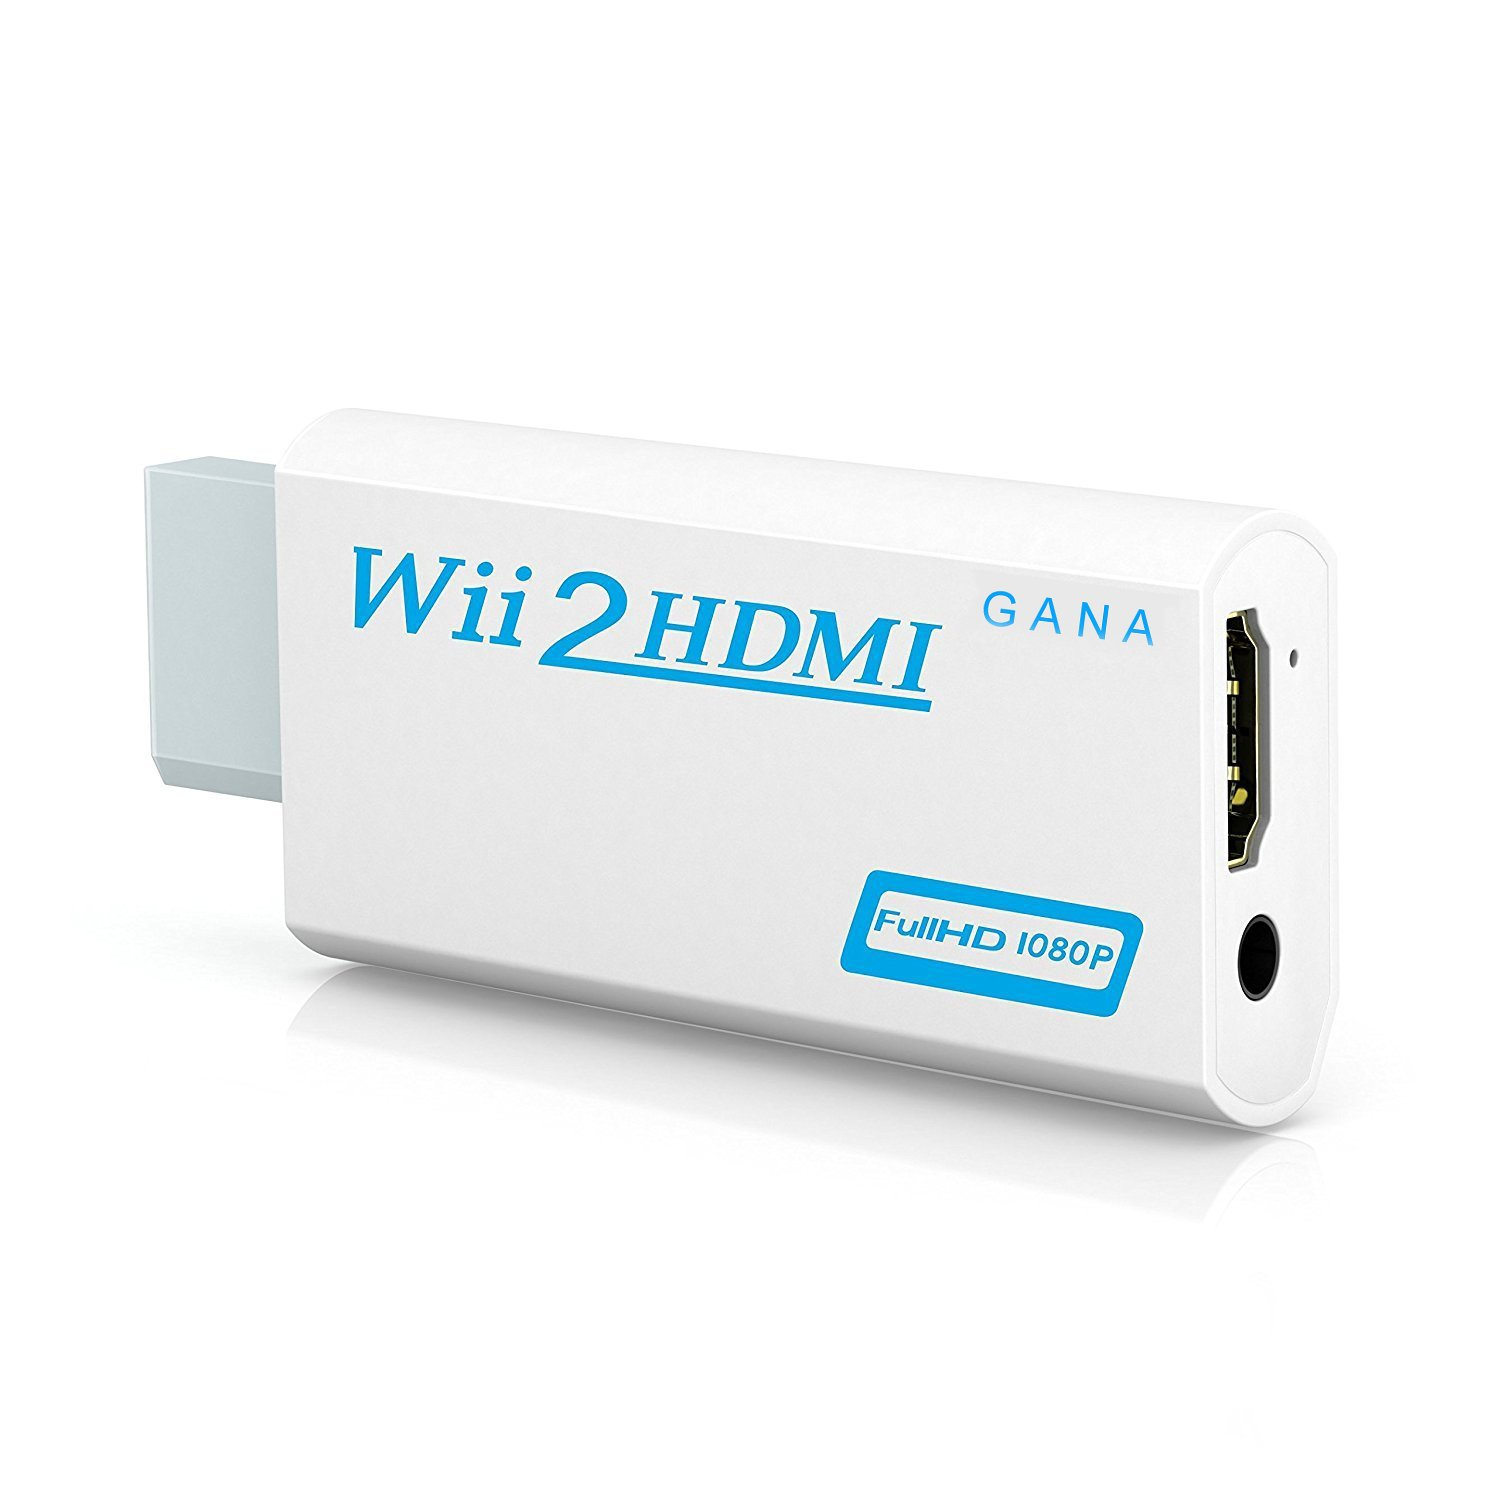 Wii to hdmi Converter, Gana wii to hdmi Adapter, wii to hdmi1080p 720p Connector